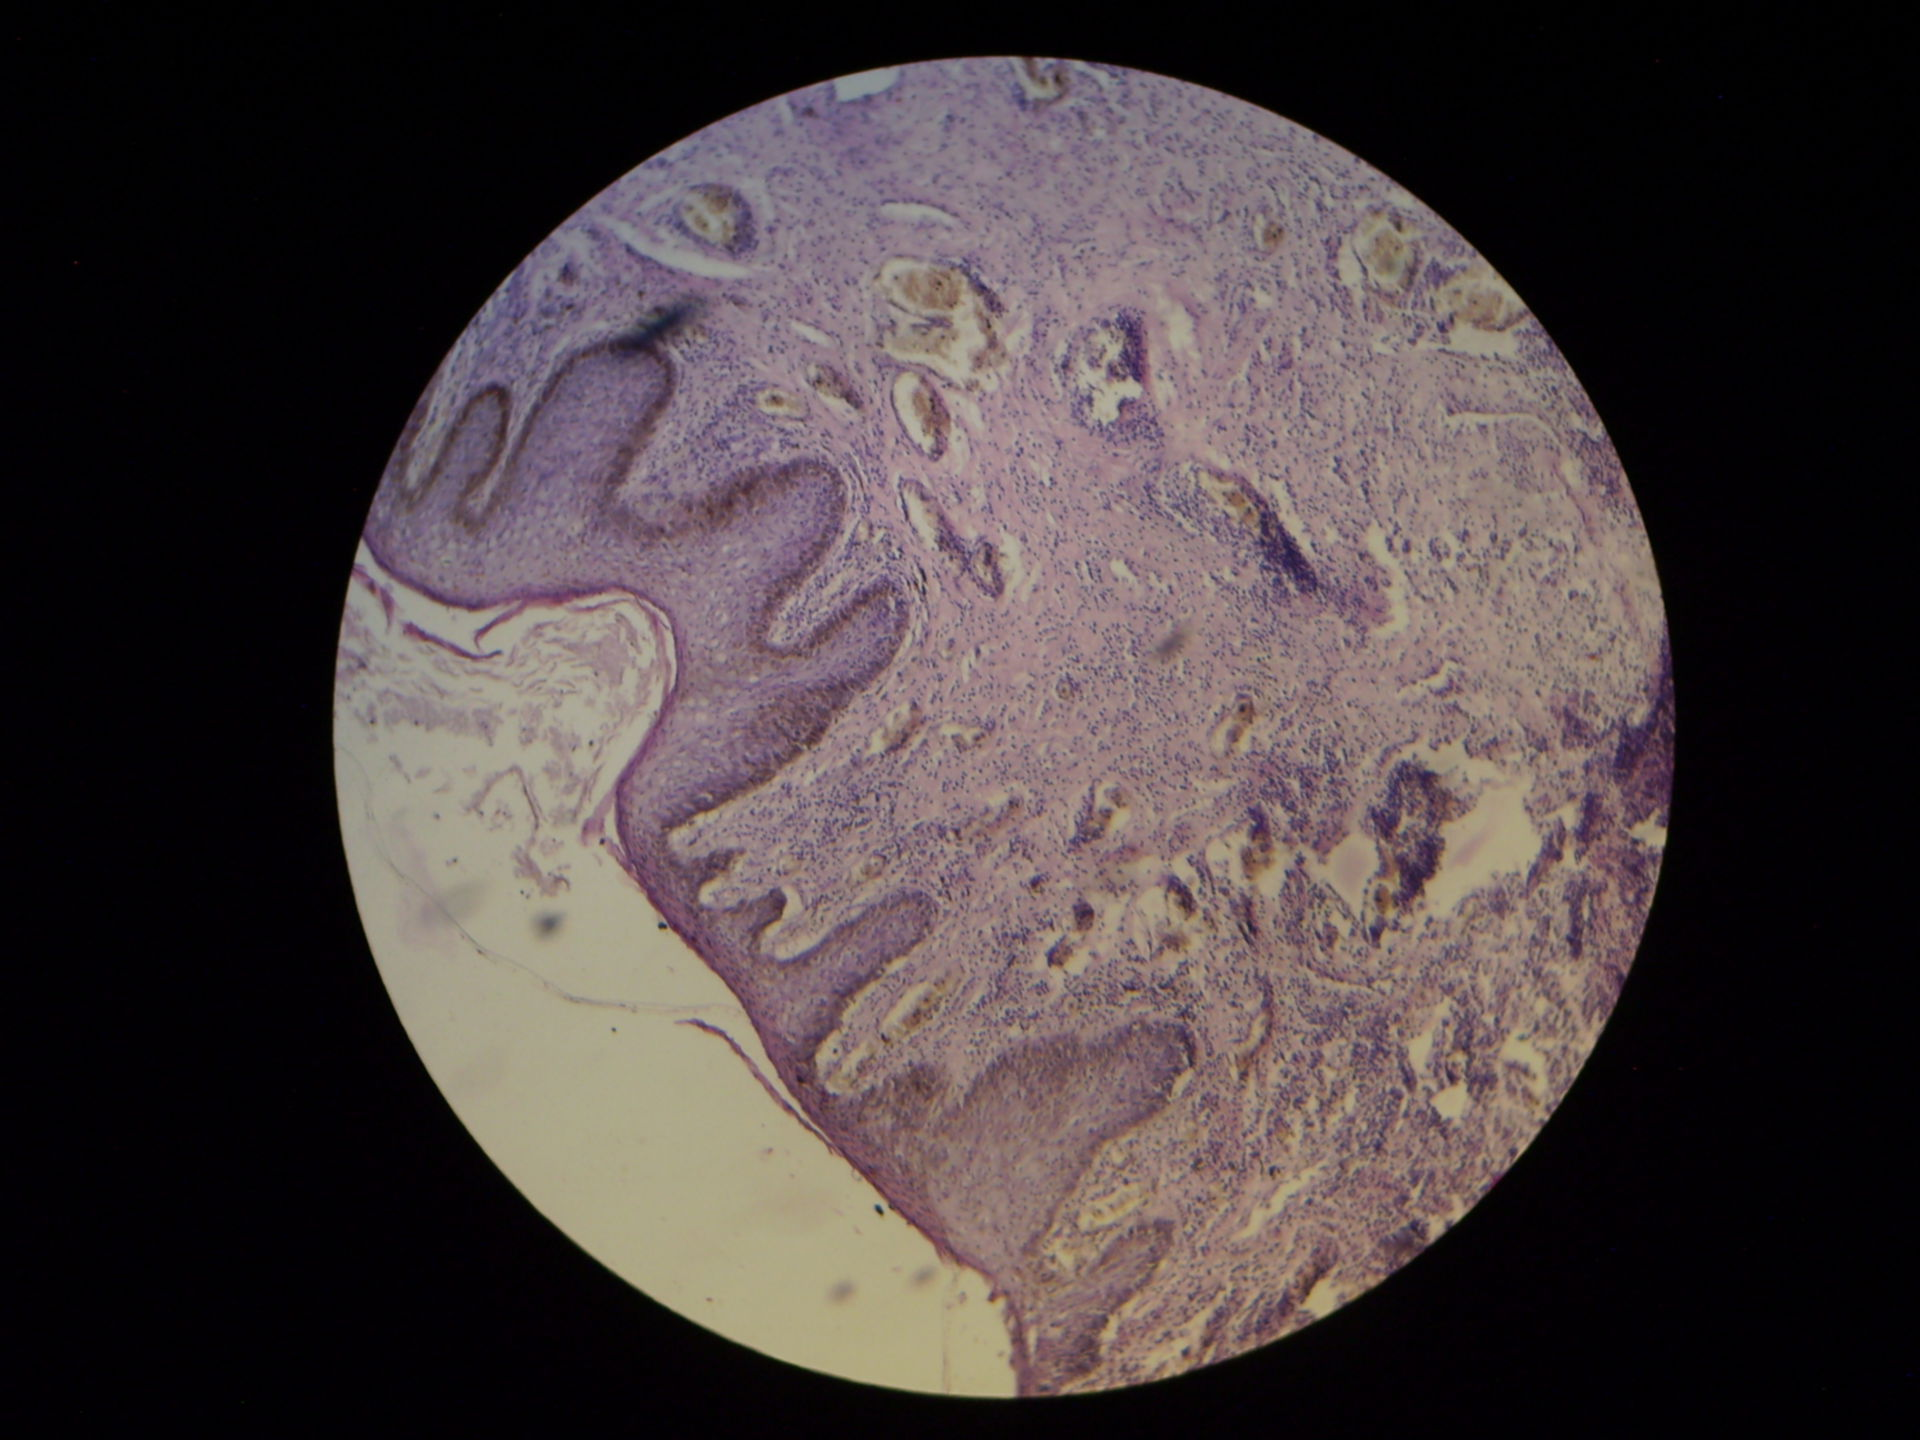 Syphilitic primary chancre on the Glans penis